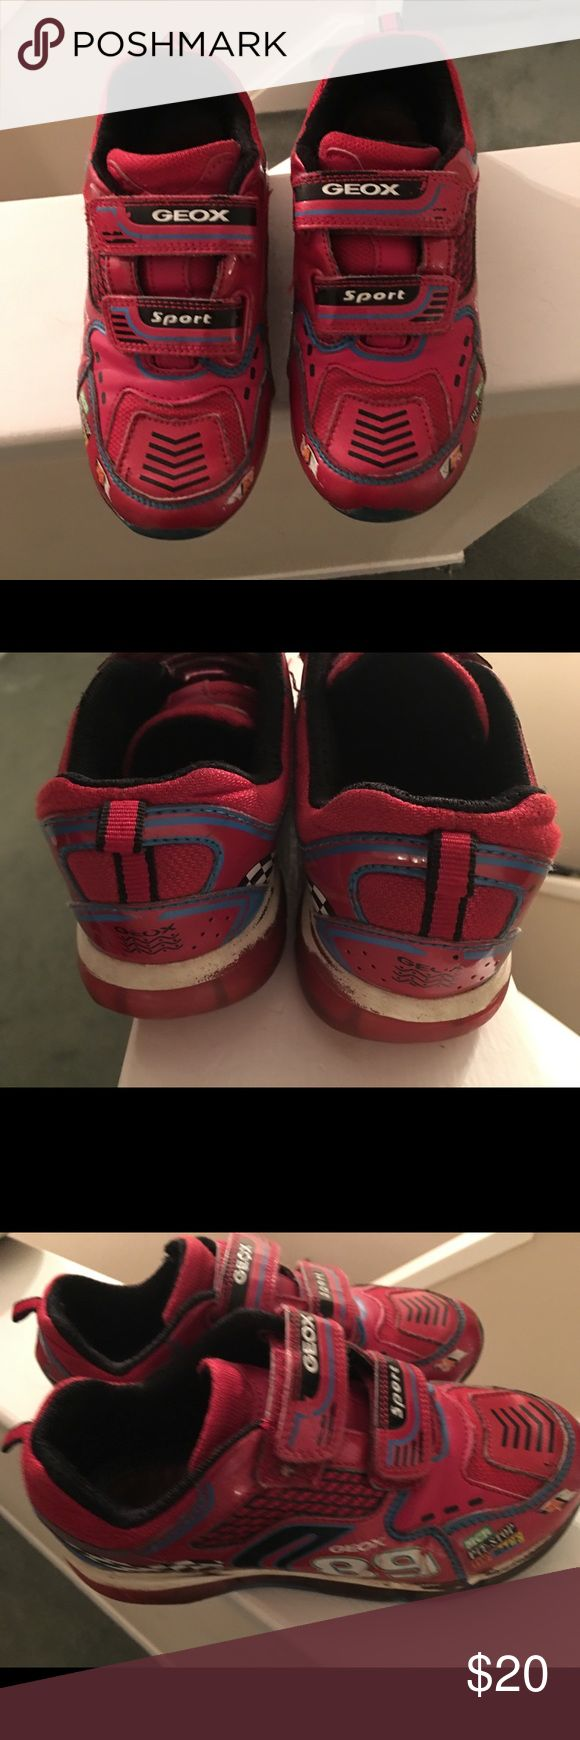 Geox kids sneakers with lights Red with lights Geox Shoes Sneakers